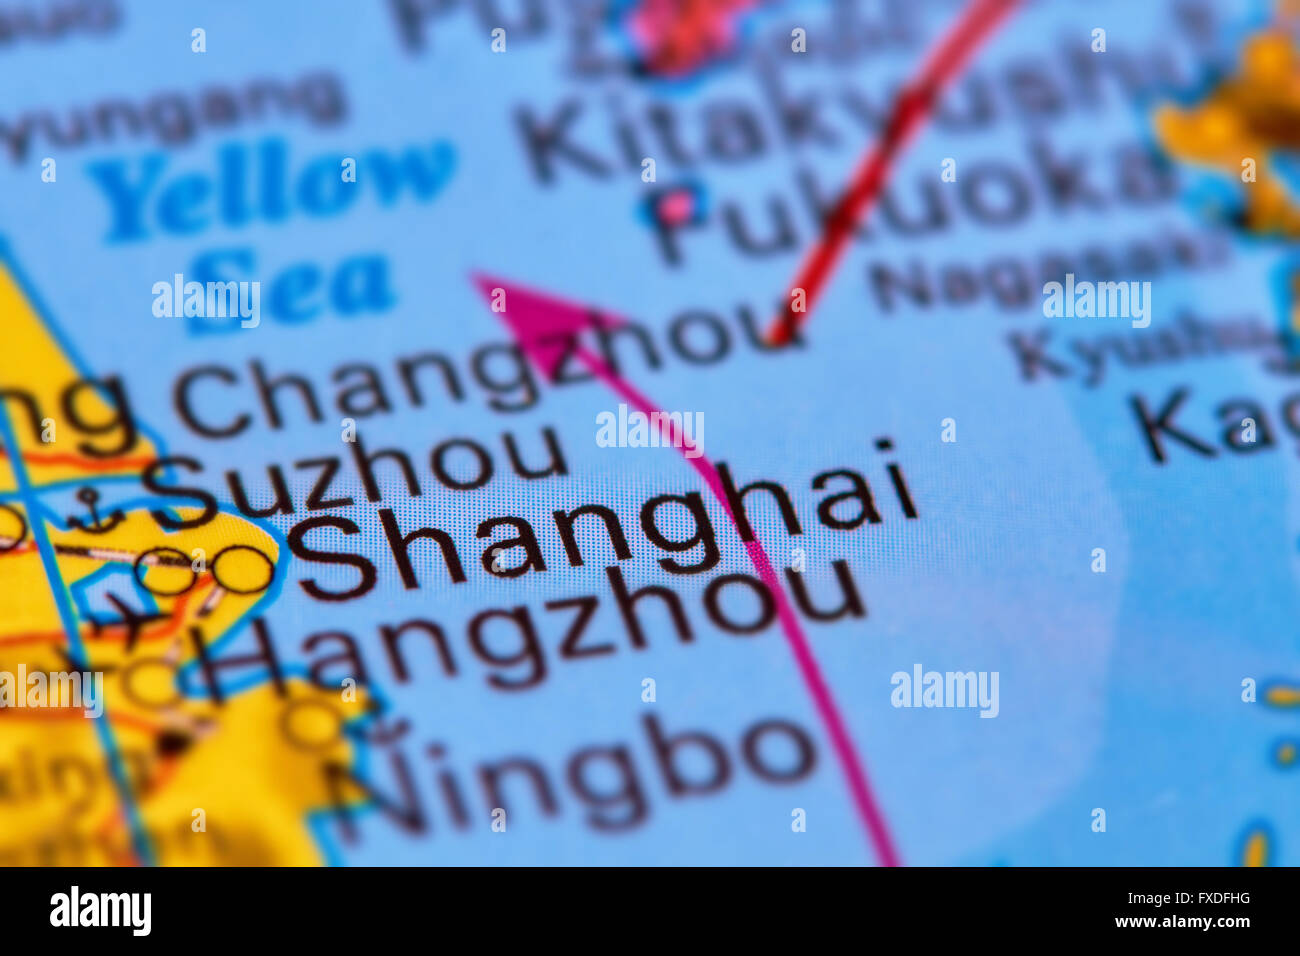 Shanghai, City in China on the World Map Stock Photo: 102330524 - Alamy